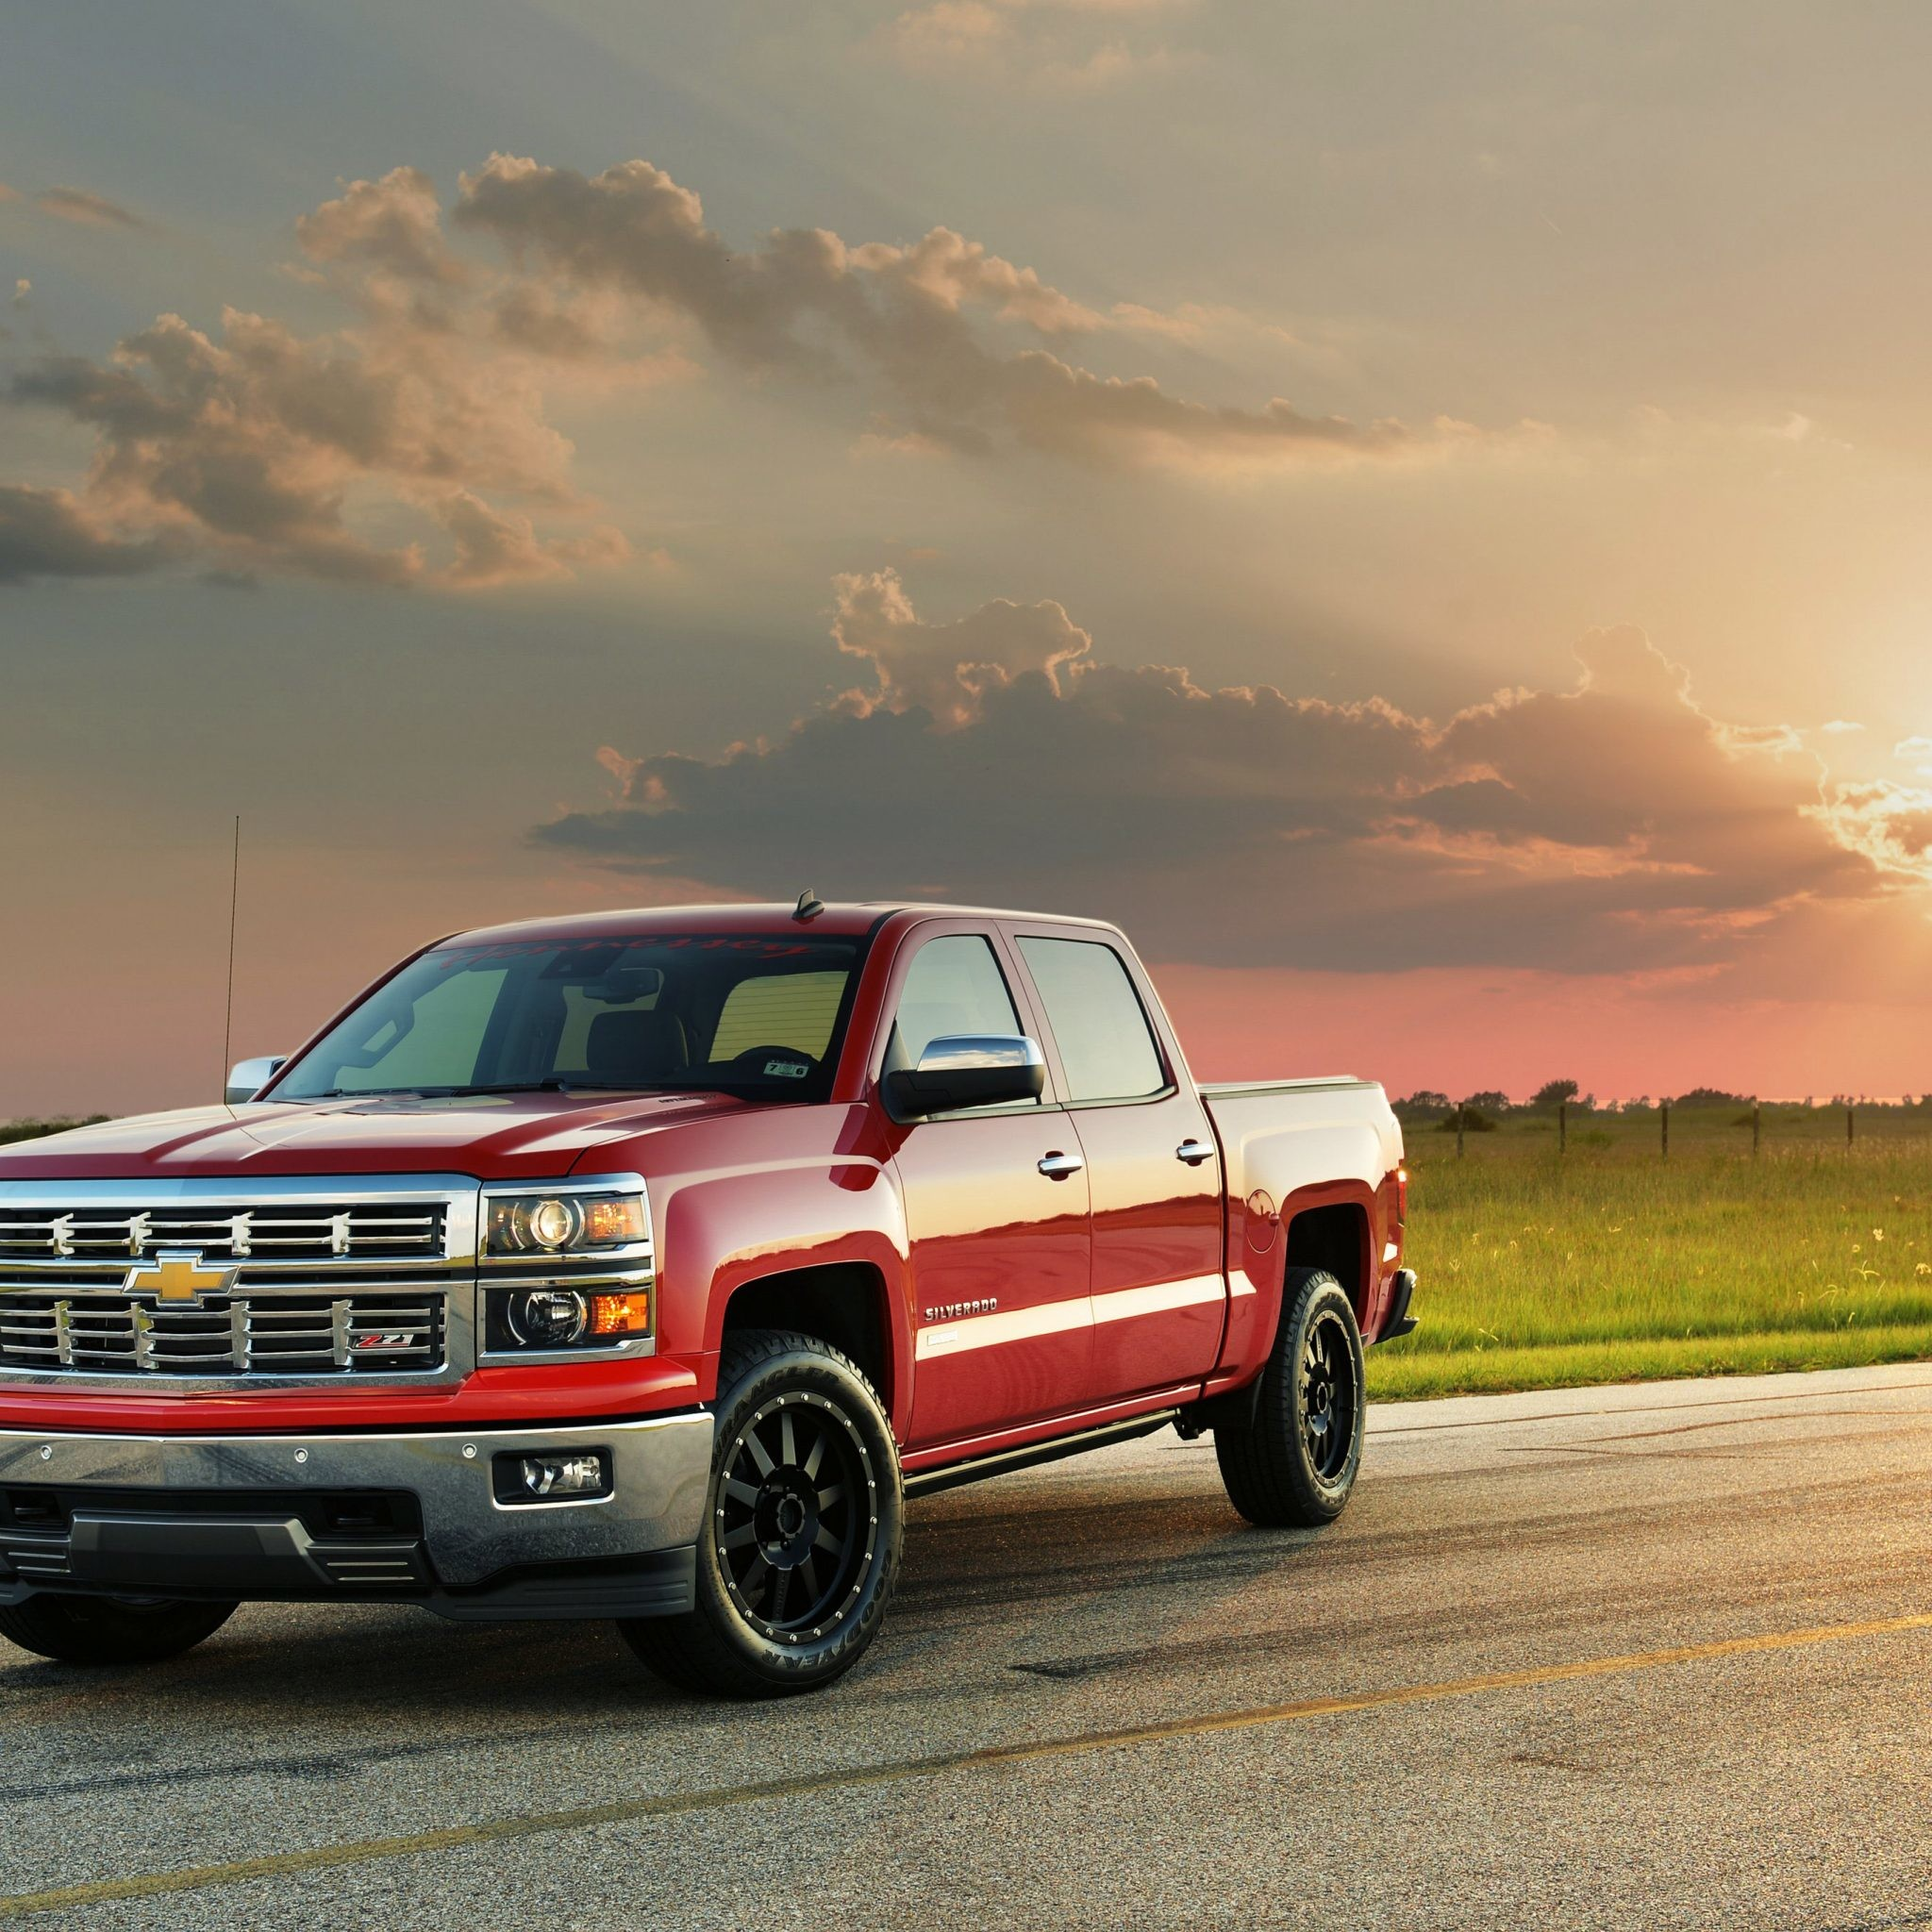 2048x2048 Download Whatsapp DP : 290x290 320x240. HD Wallpaper : 2015 Chevrolet  Silverado ...